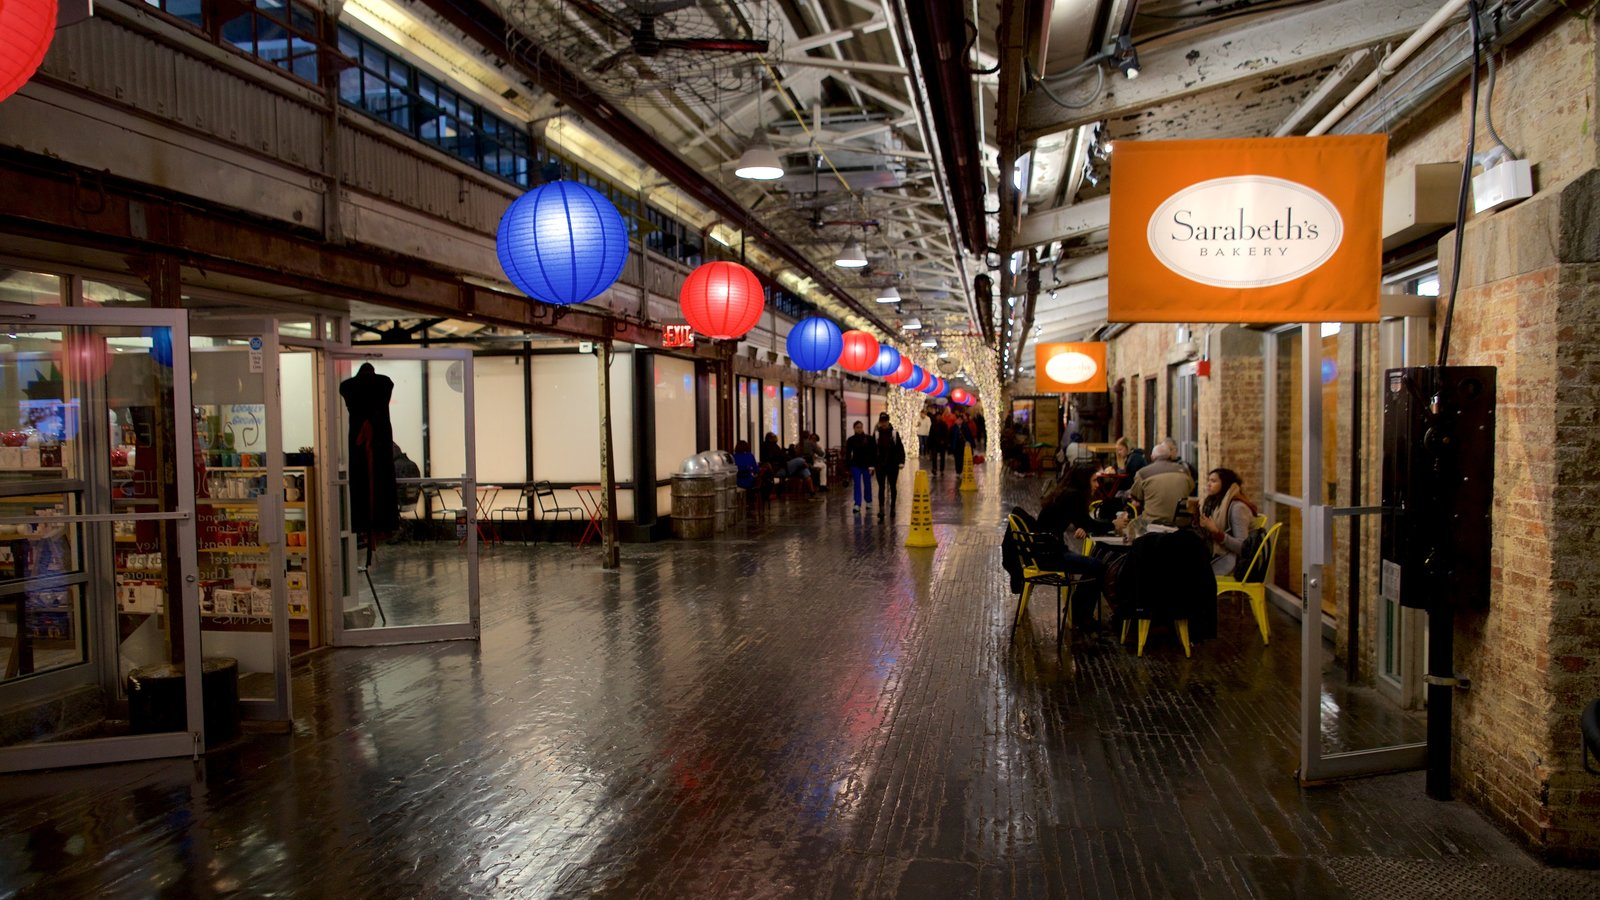 Chelsea Market featuring signage and interior views